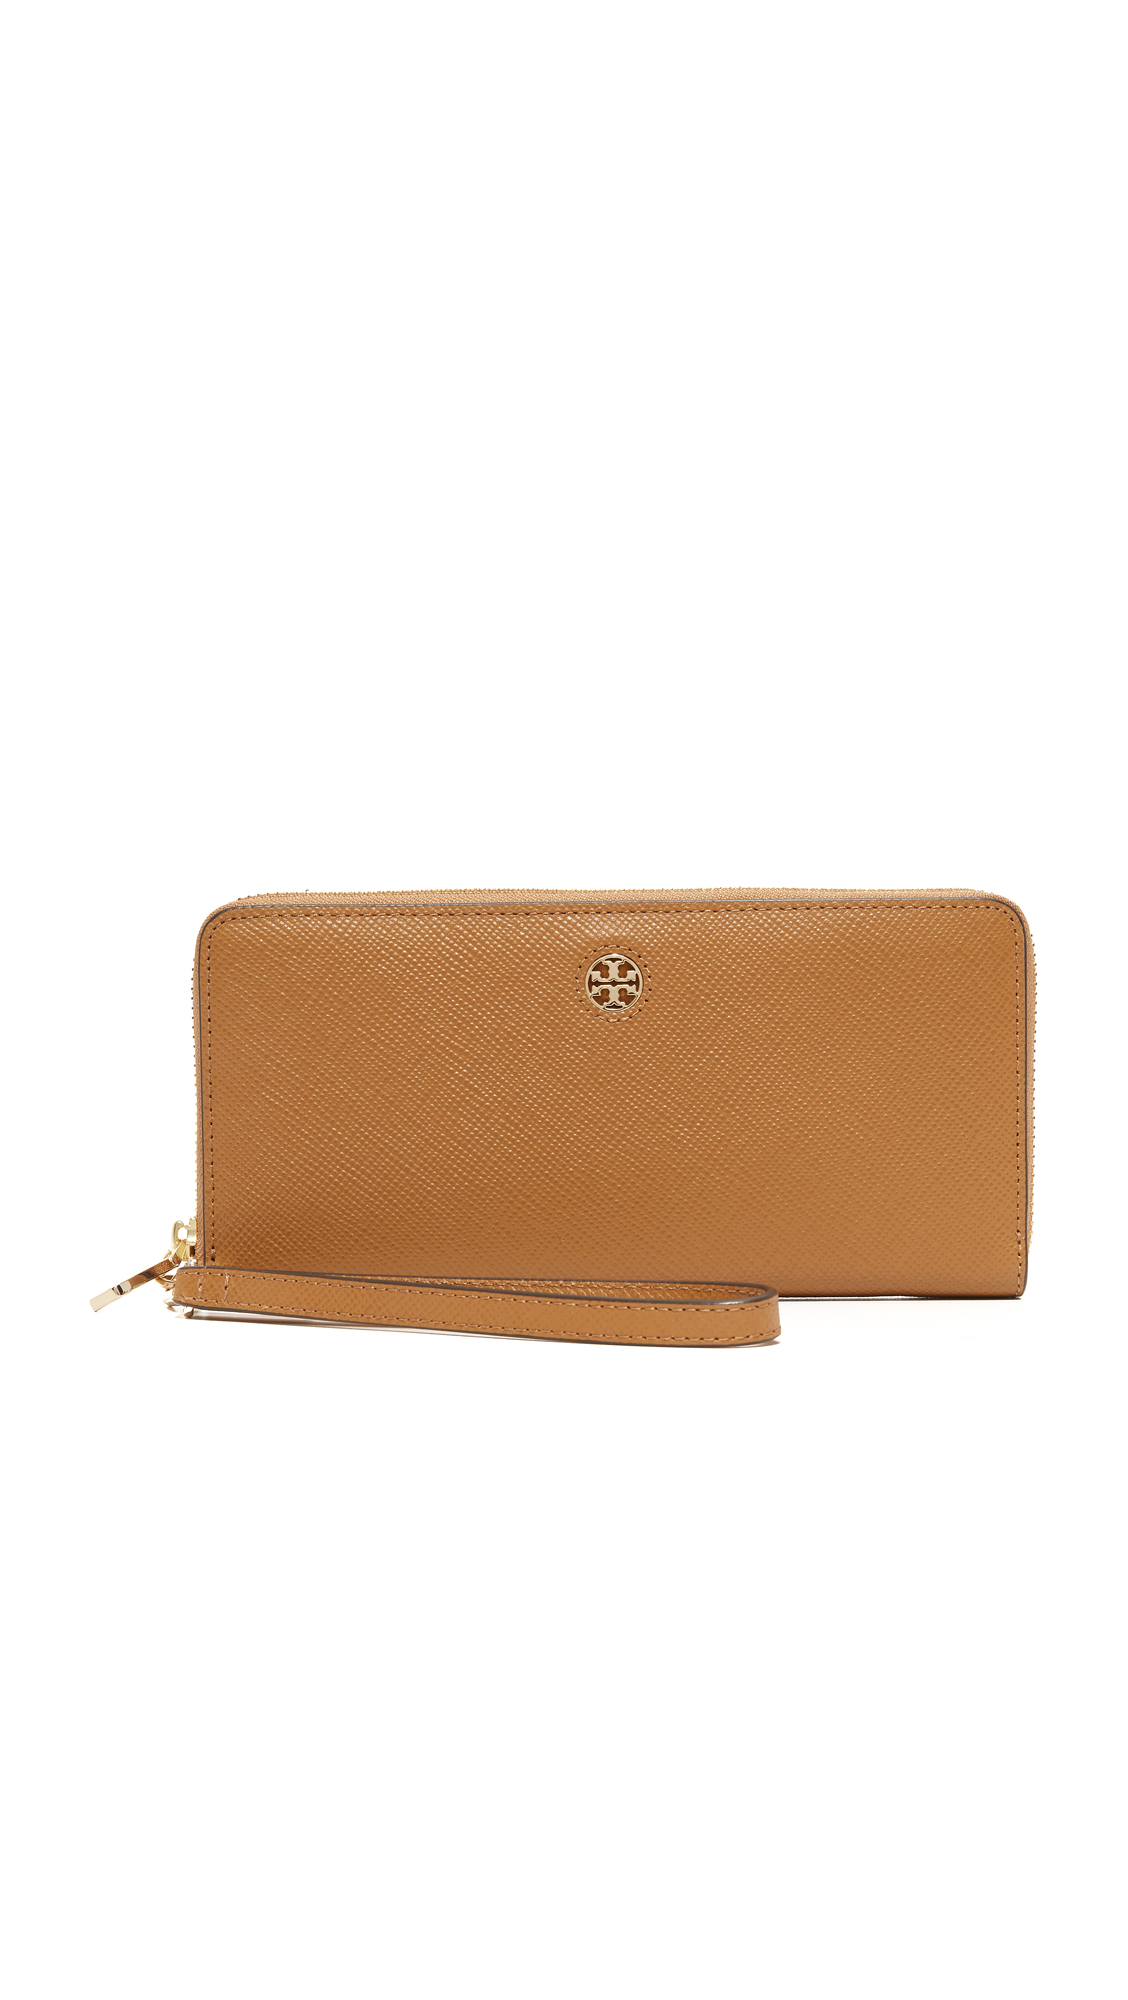 tory burch female tory burch perry zip passport continental wallet tigers eye